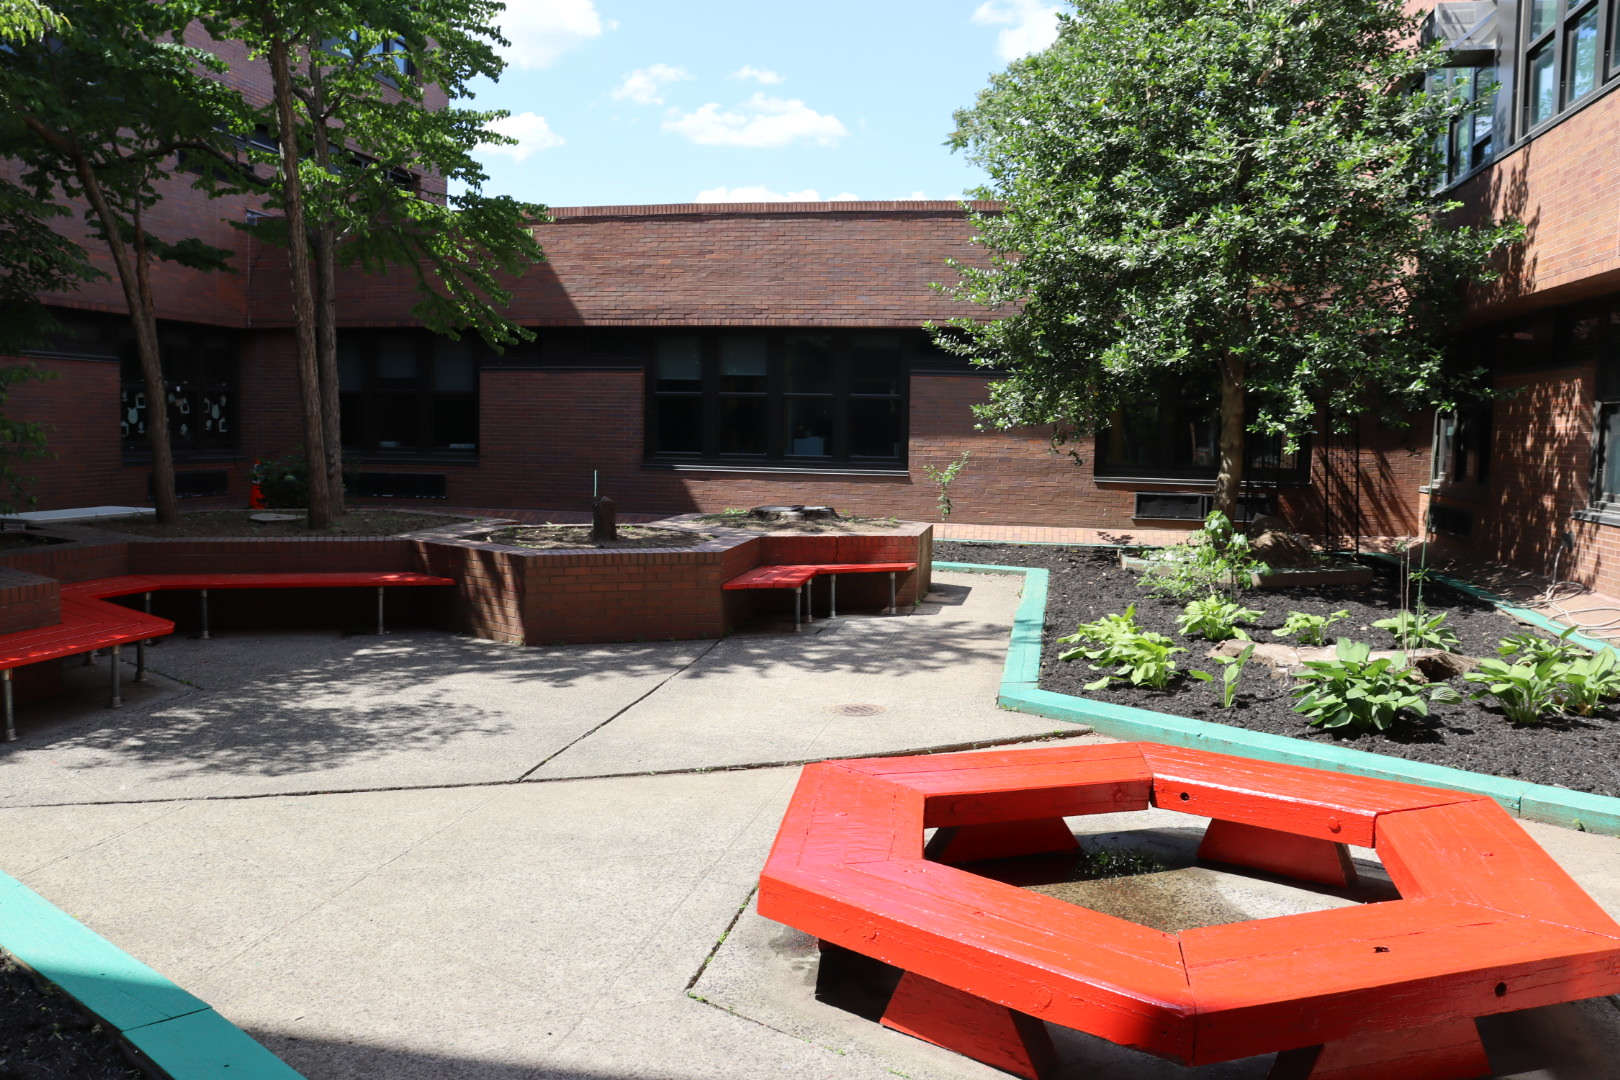 Courtyard where some classes eat snack